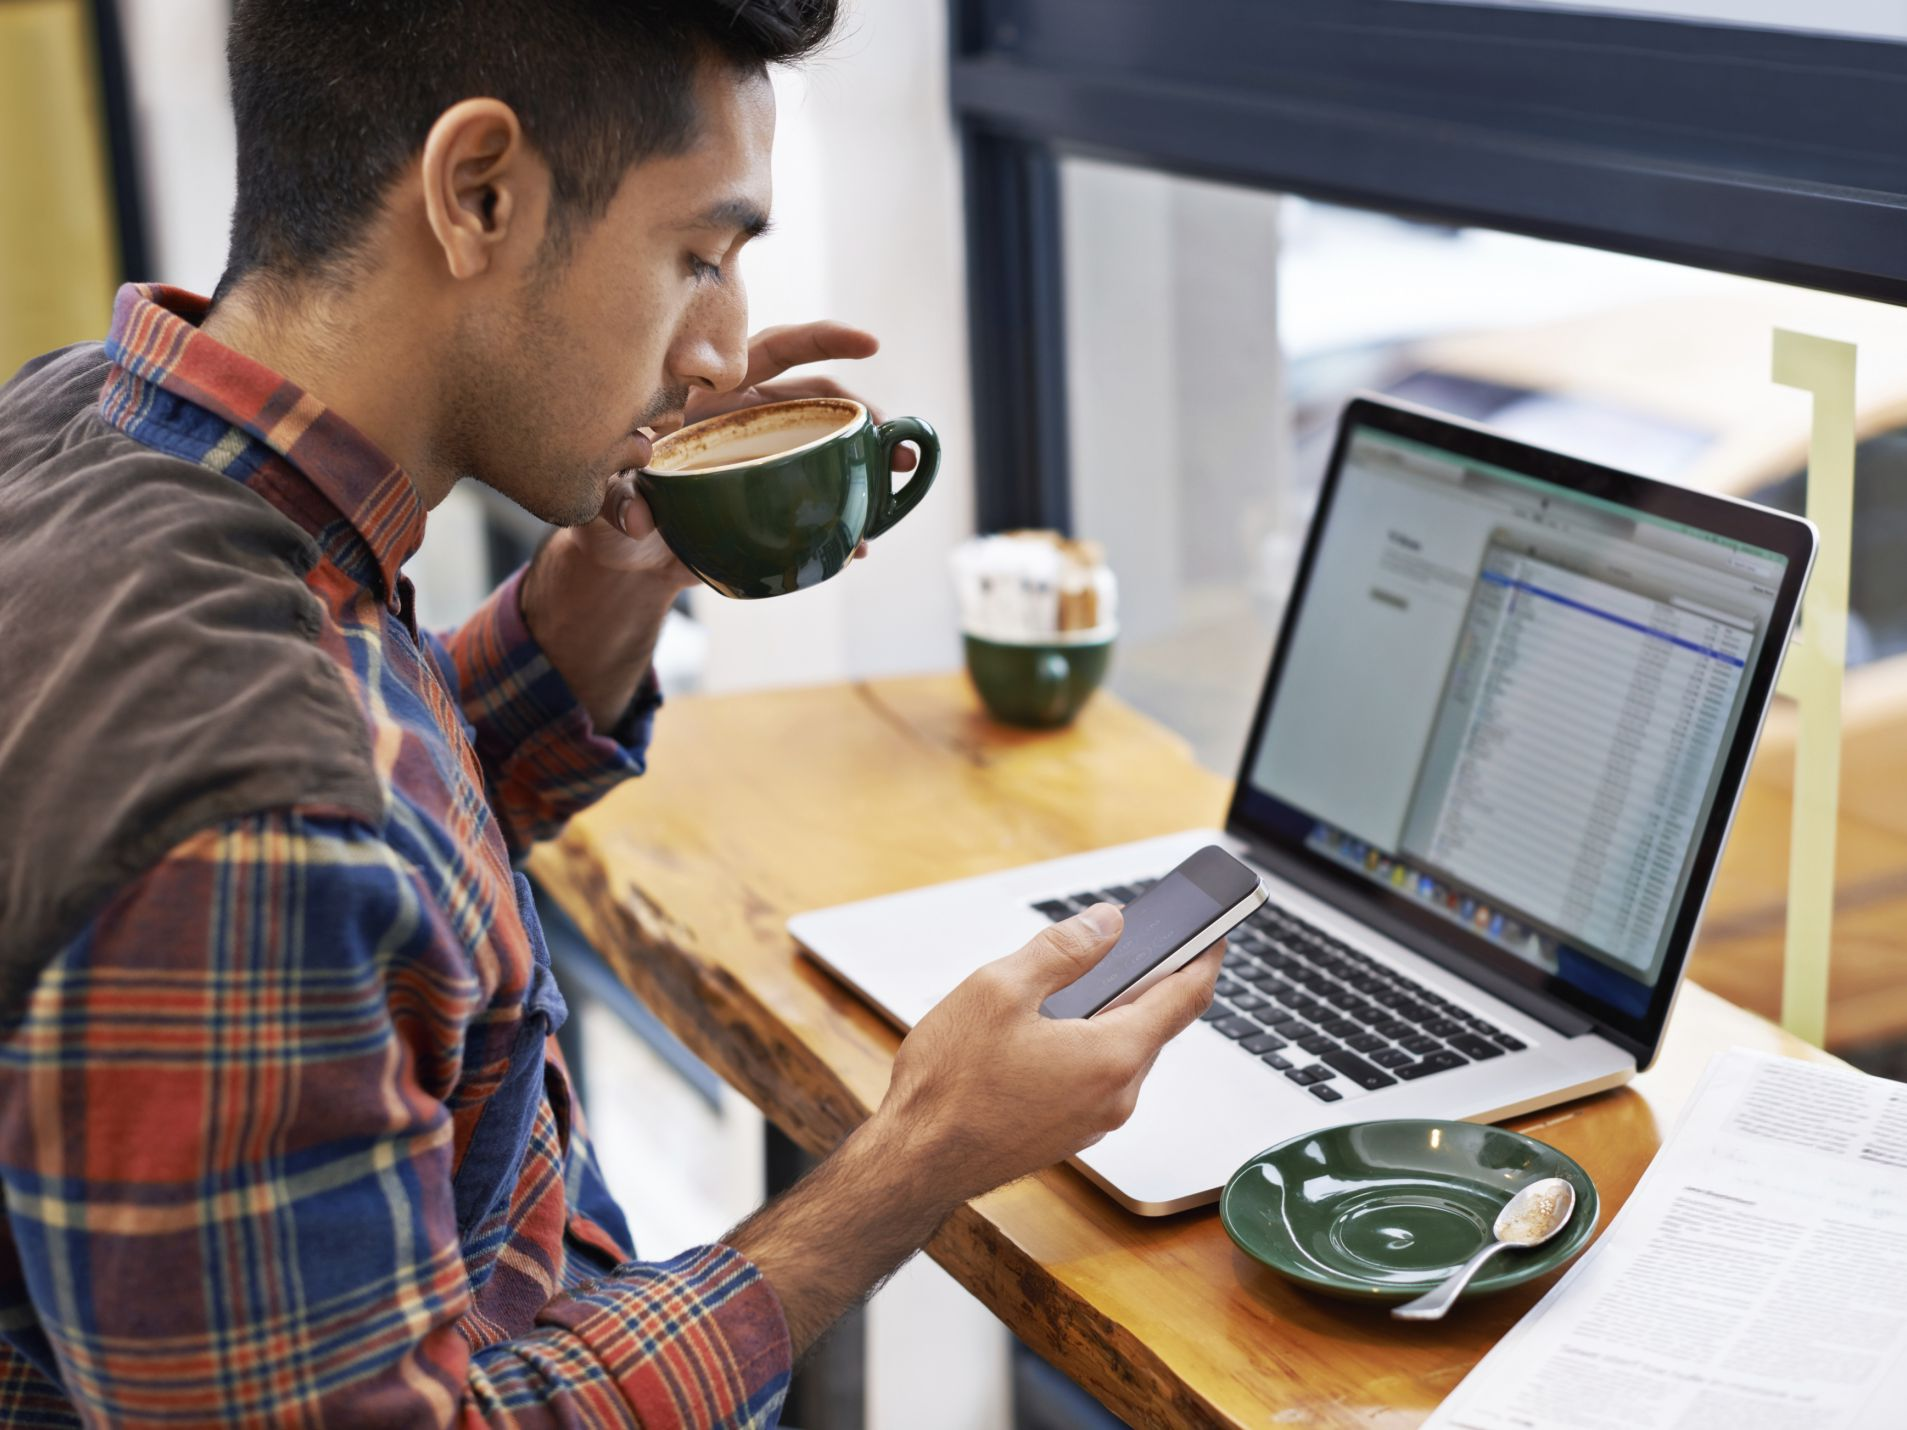 12 Places To Find Freelance Work Online